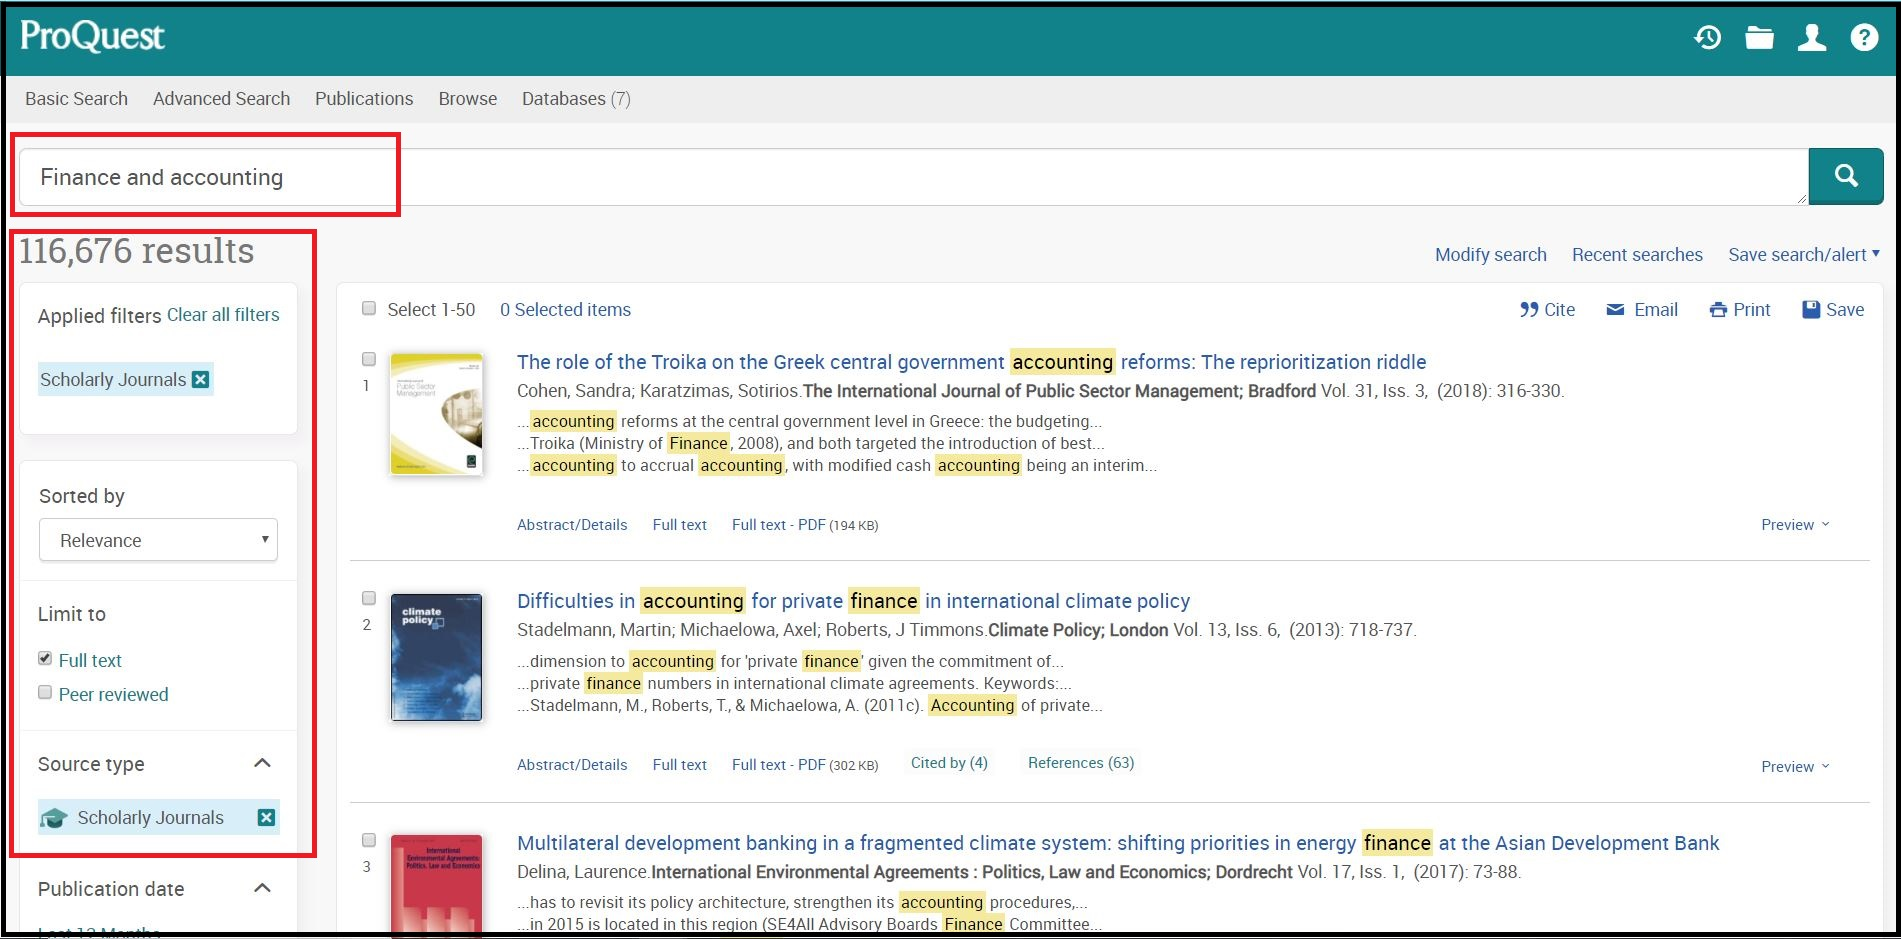 Open ProQuest ABI/INFORM (Dateline, Global, Trade & Industry) then Search for Required Subject and  Click on Required Source Type e.g. Scholarly Journals